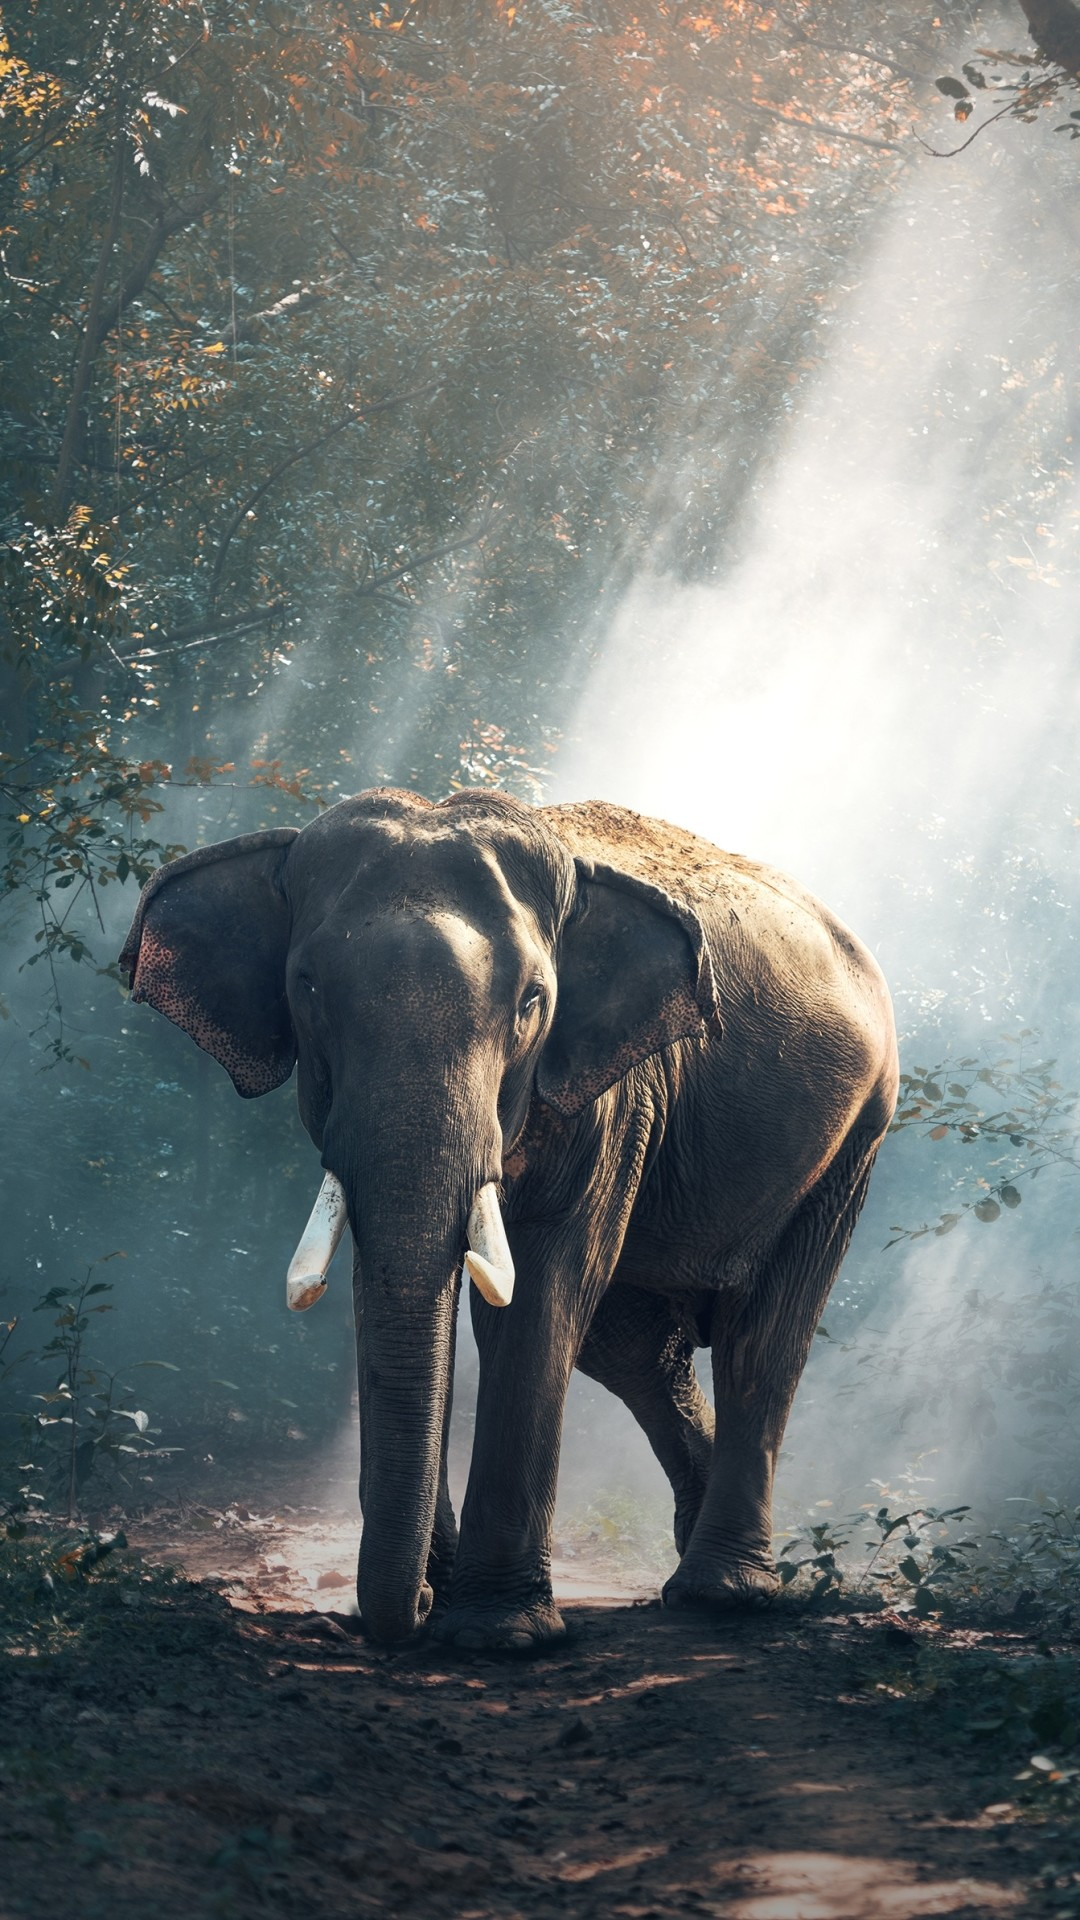 Elephant screensavers and wallpaper 69 images - Elephant background iphone ...